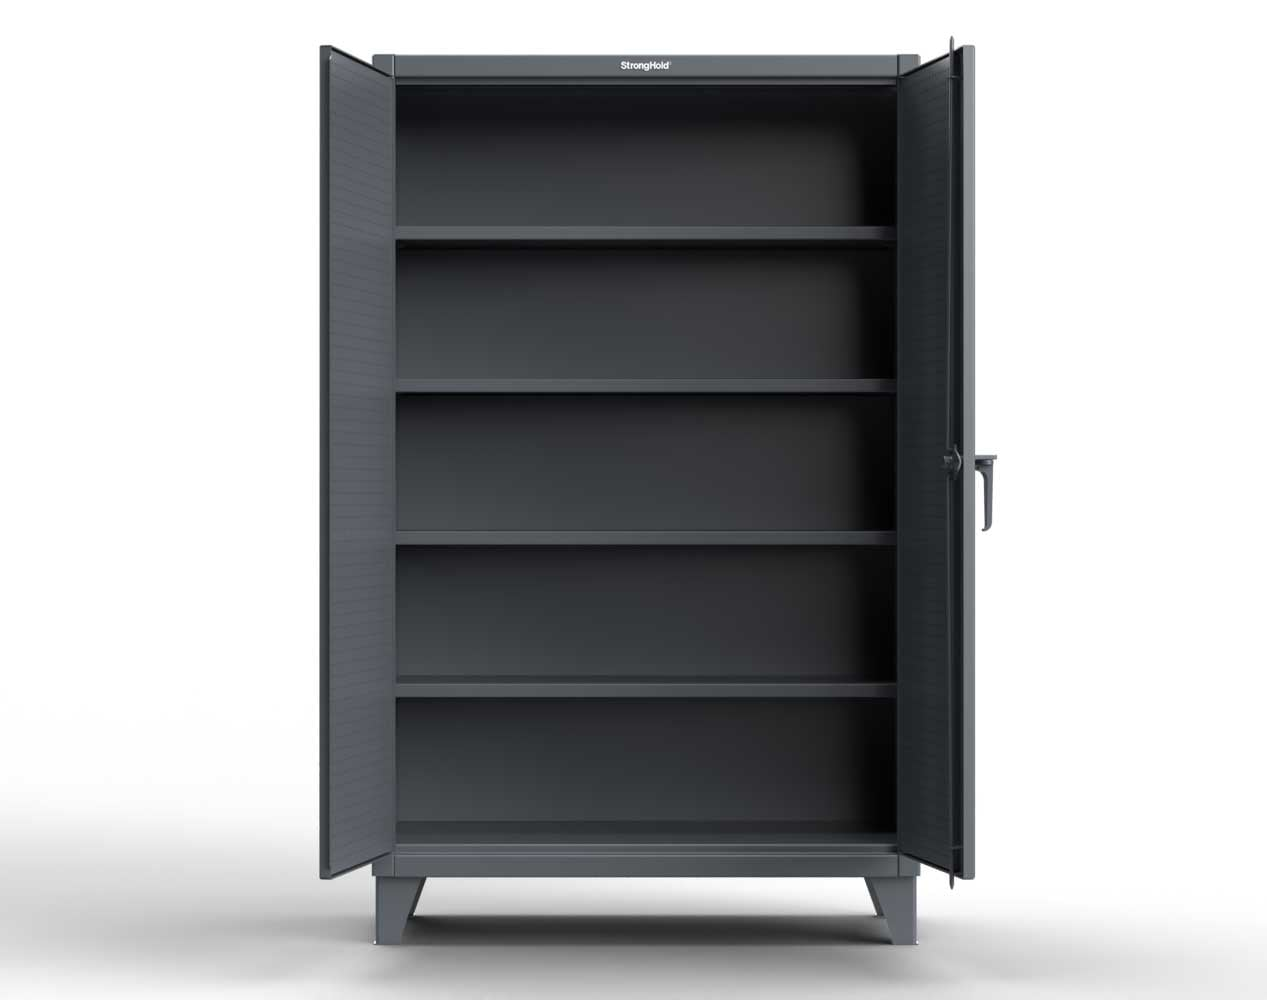 Extra Heavy Duty 12 GA Cabinet with Pegboard Doors, 4 Shelves  – 72 In. W x 24 In. D x 78 In. H